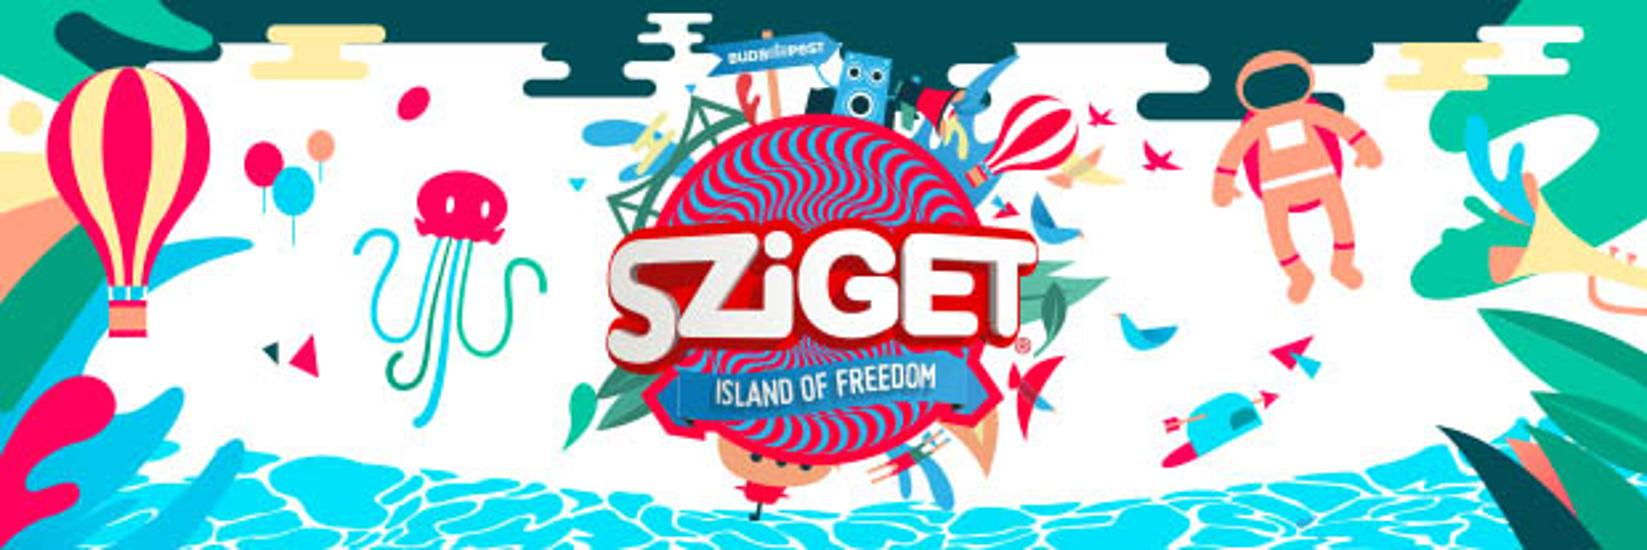 Muse & 13 More Added To The Sziget Festival Line-Up